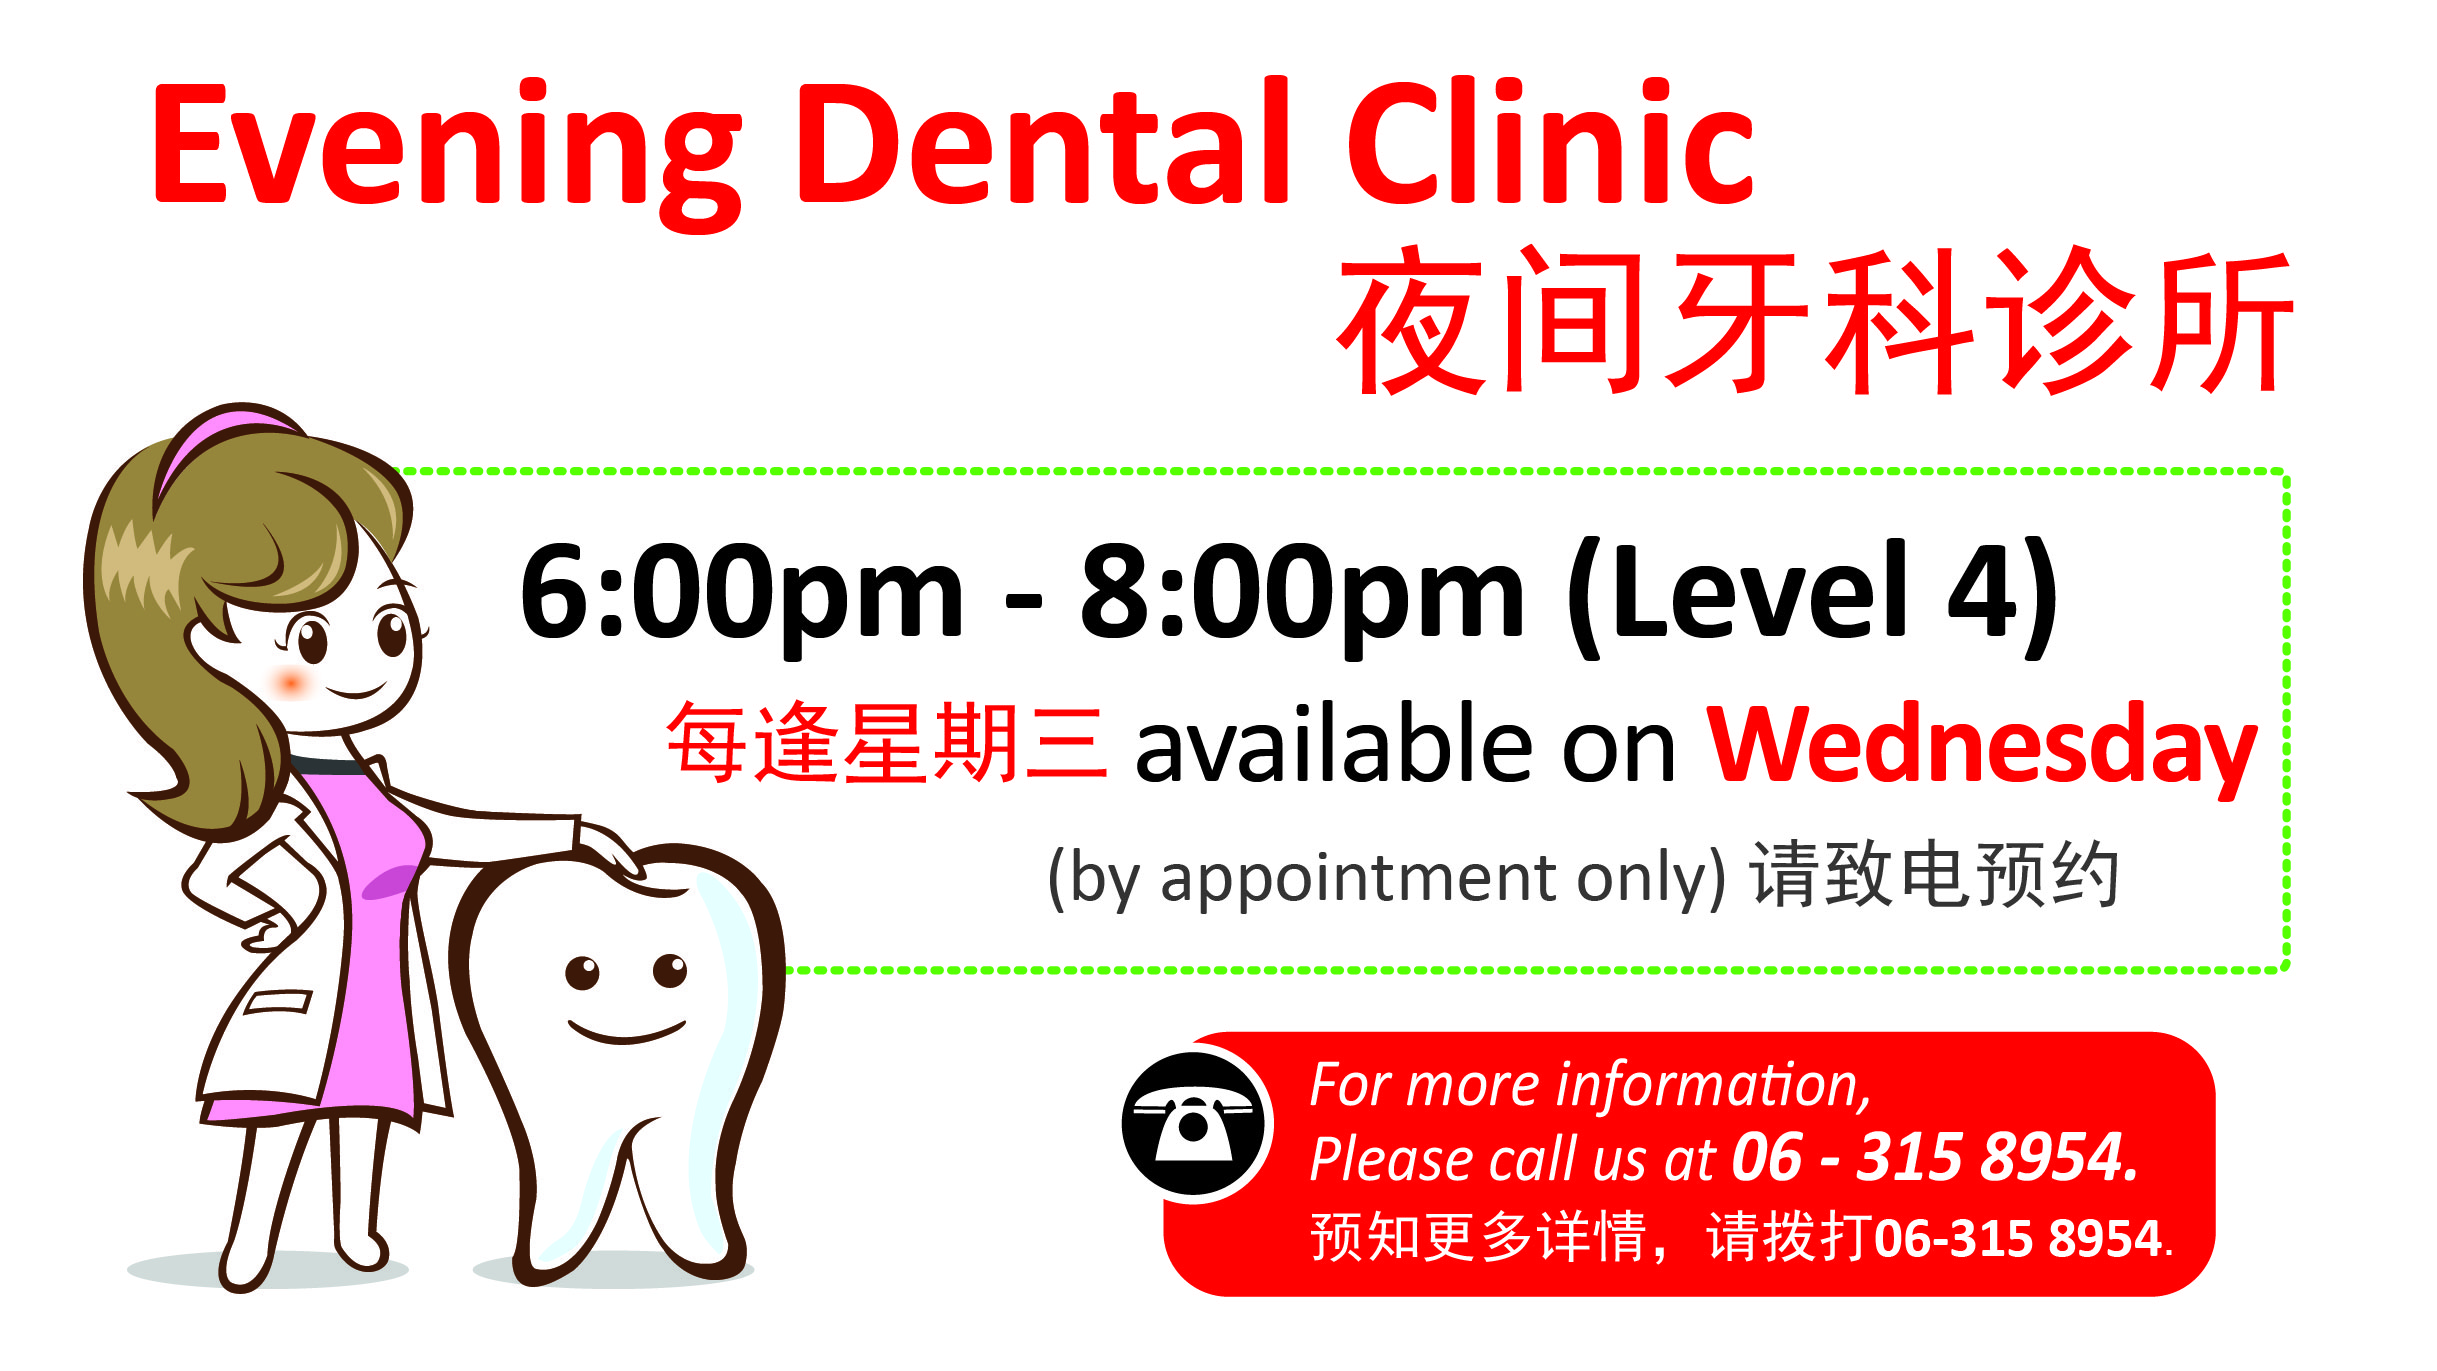 dental-evening-clinic-website-02